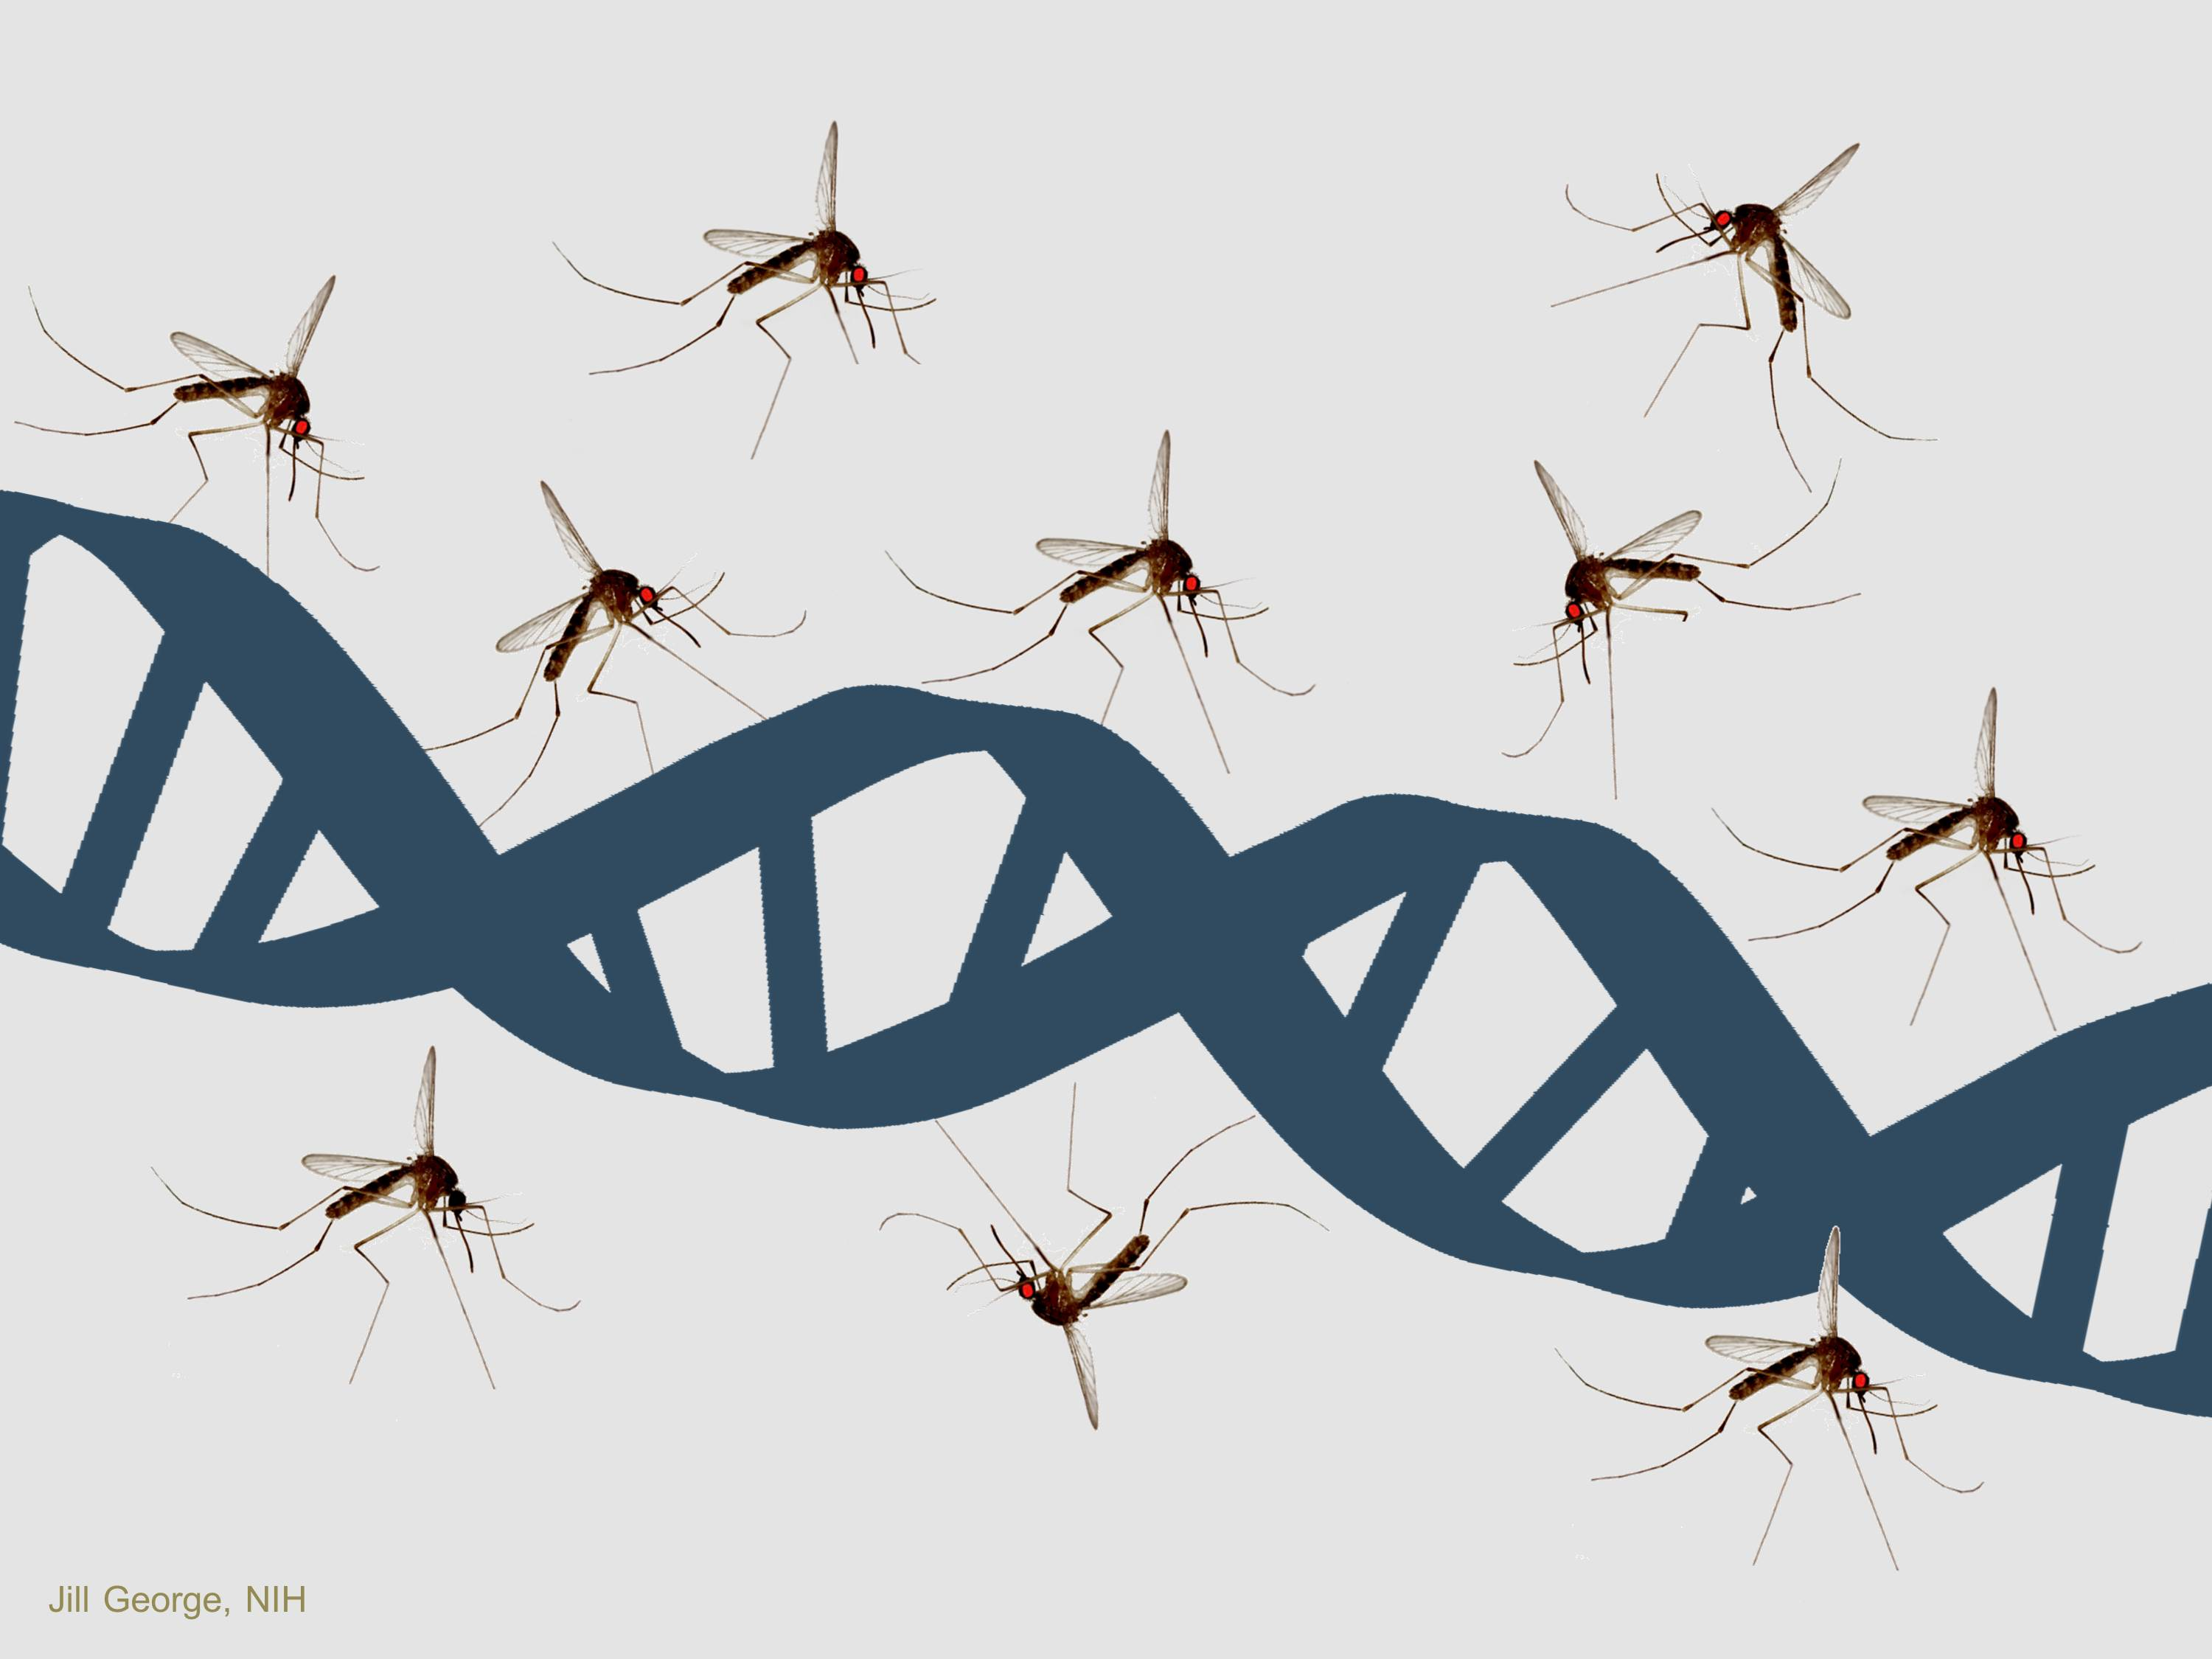 Scientists at UC Berkeley and UC Riverside have demonstrated a way to edit the genome of disease-carrying mosquitoes that brings us closer to suppressing them on a continental scale. [NIH]